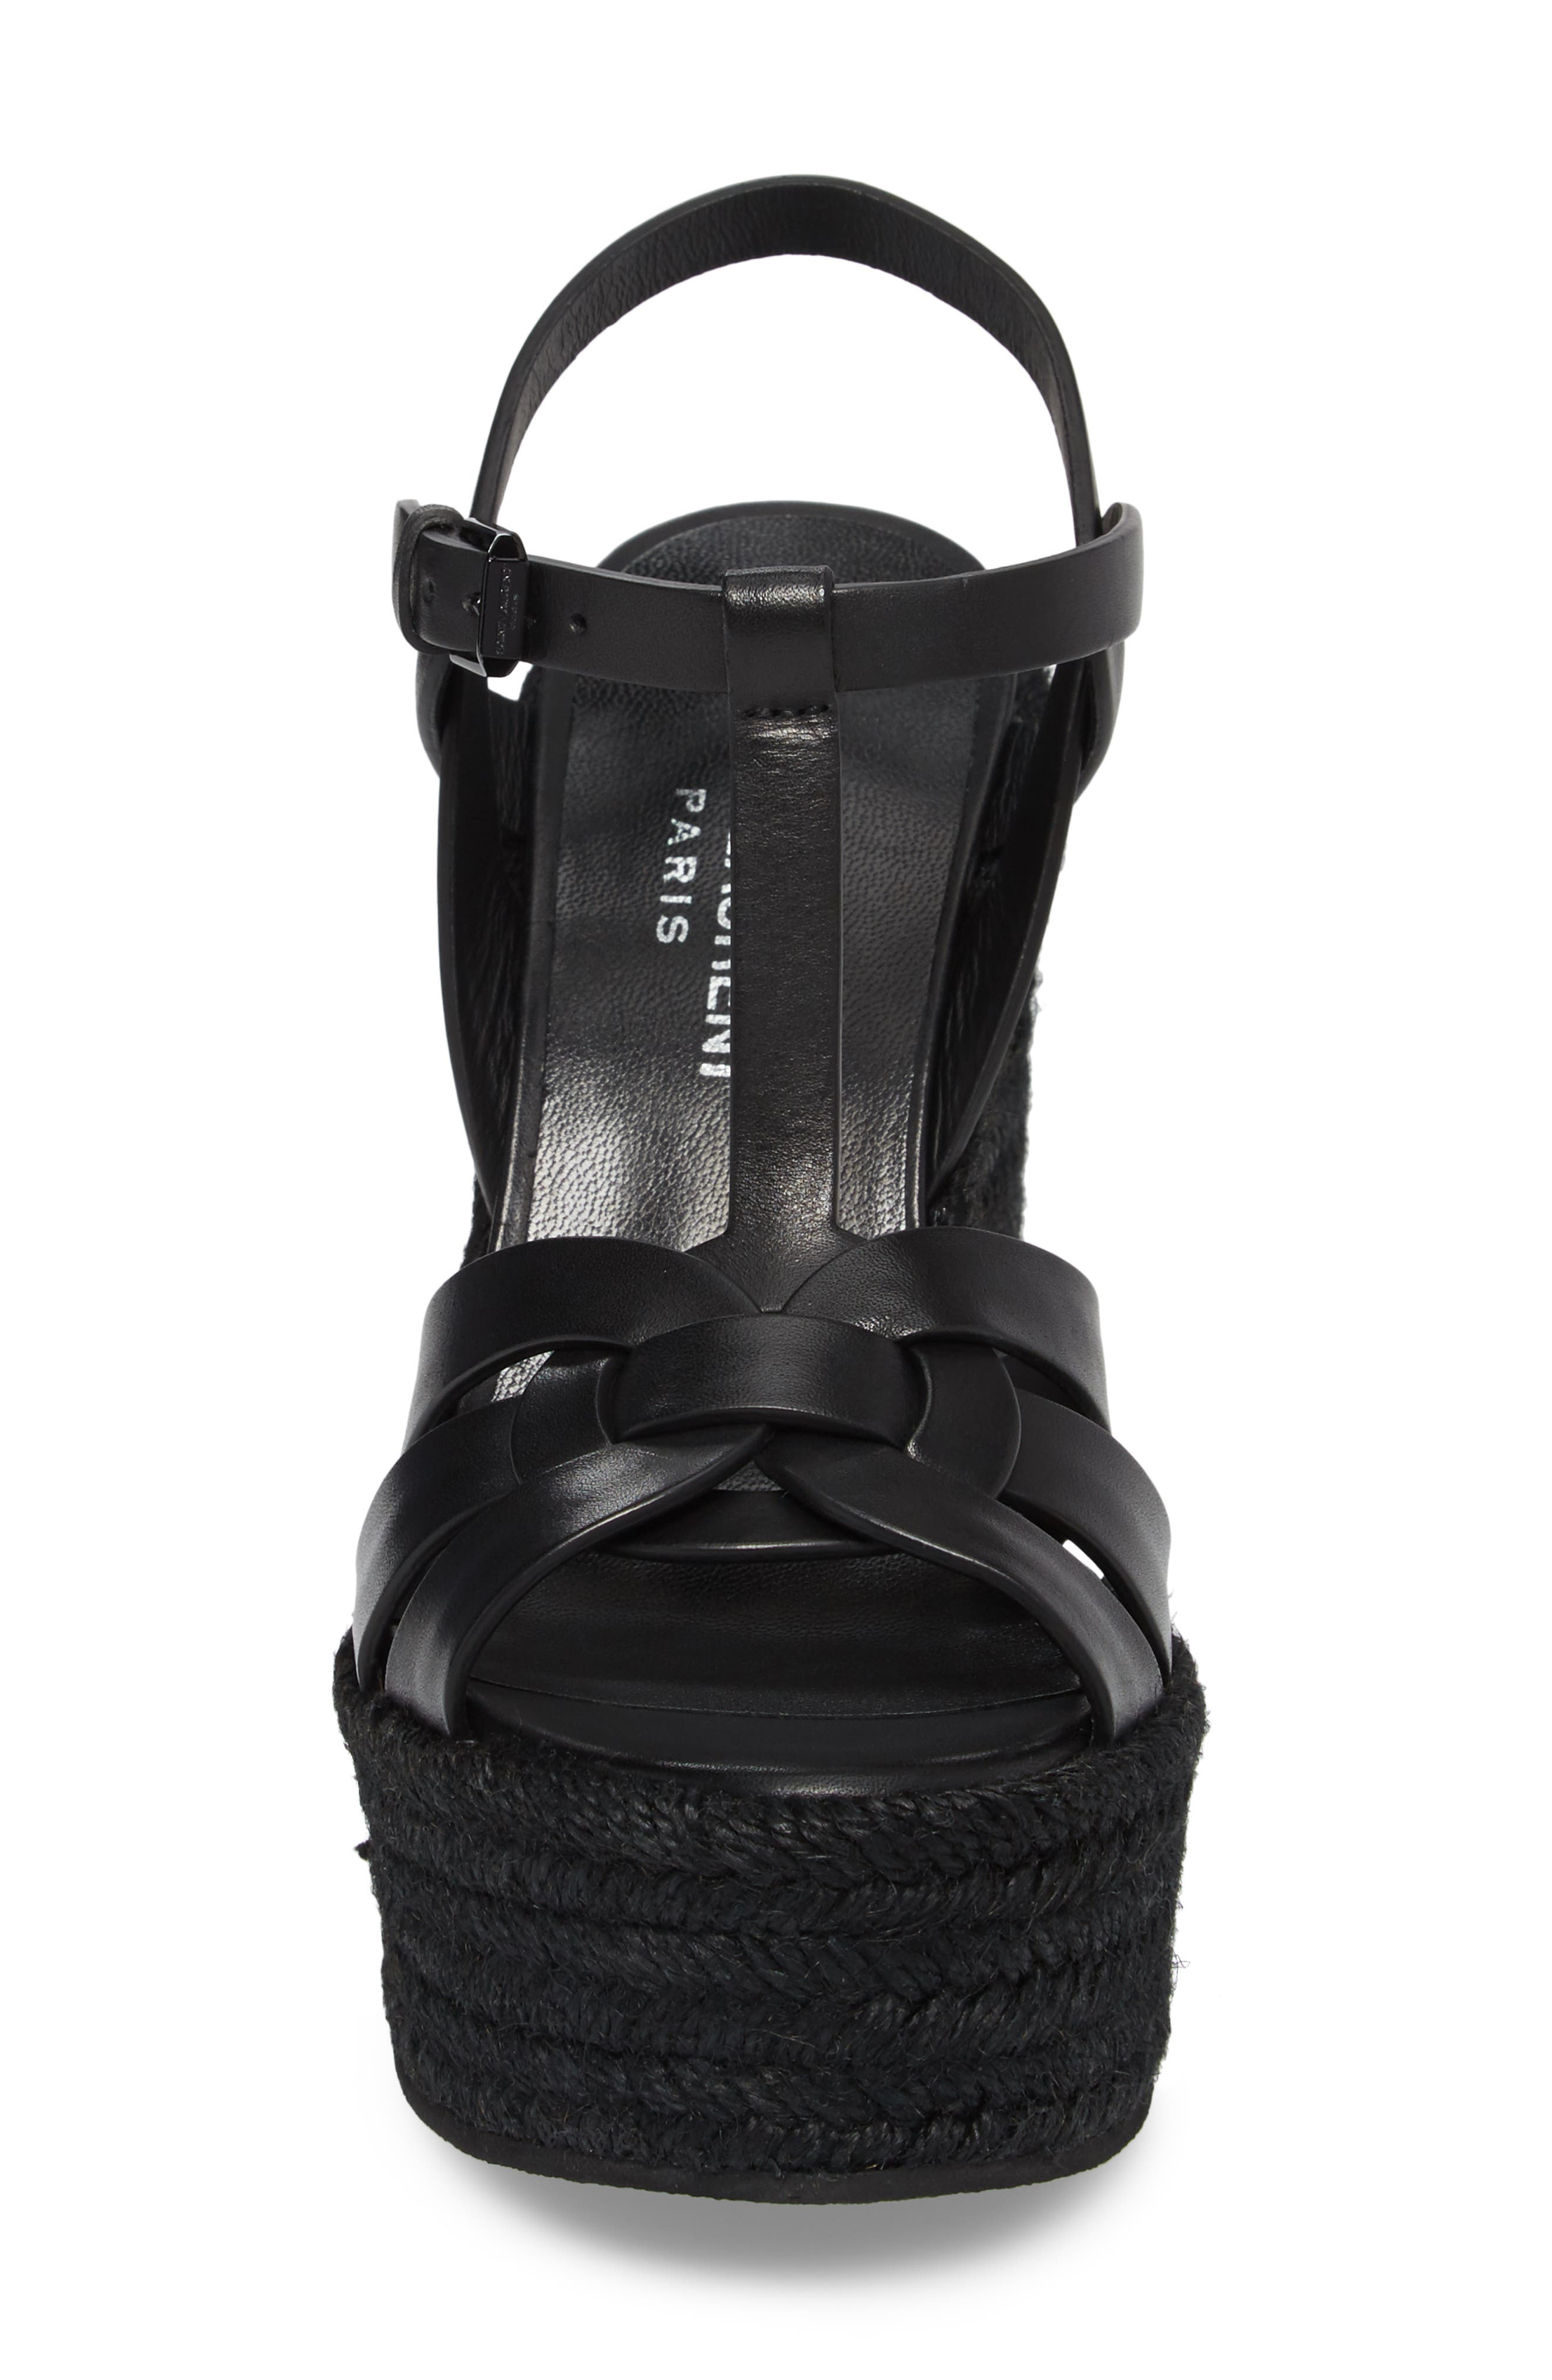 SAINT LAURENT, Tribute Espadrille Wedge, Alternate thumbnail 4, color, BLACK